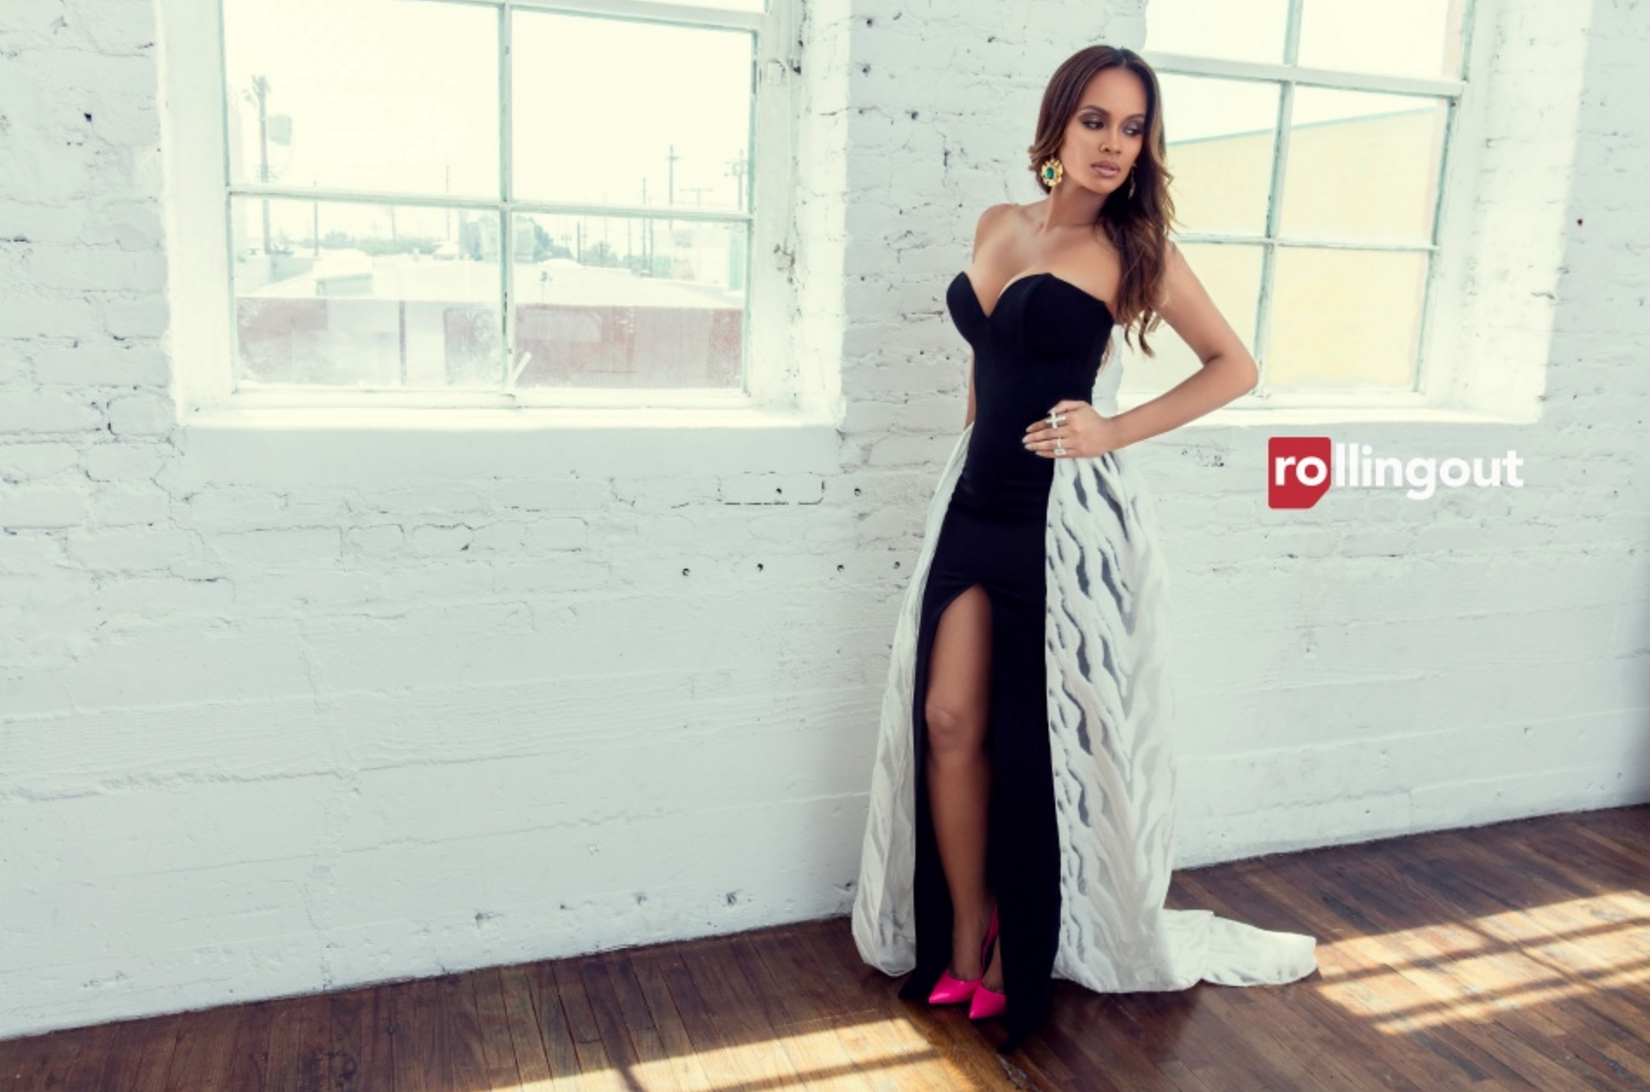 Evelyn-Lozada-Rolling-Out-Magazine-Interview-4